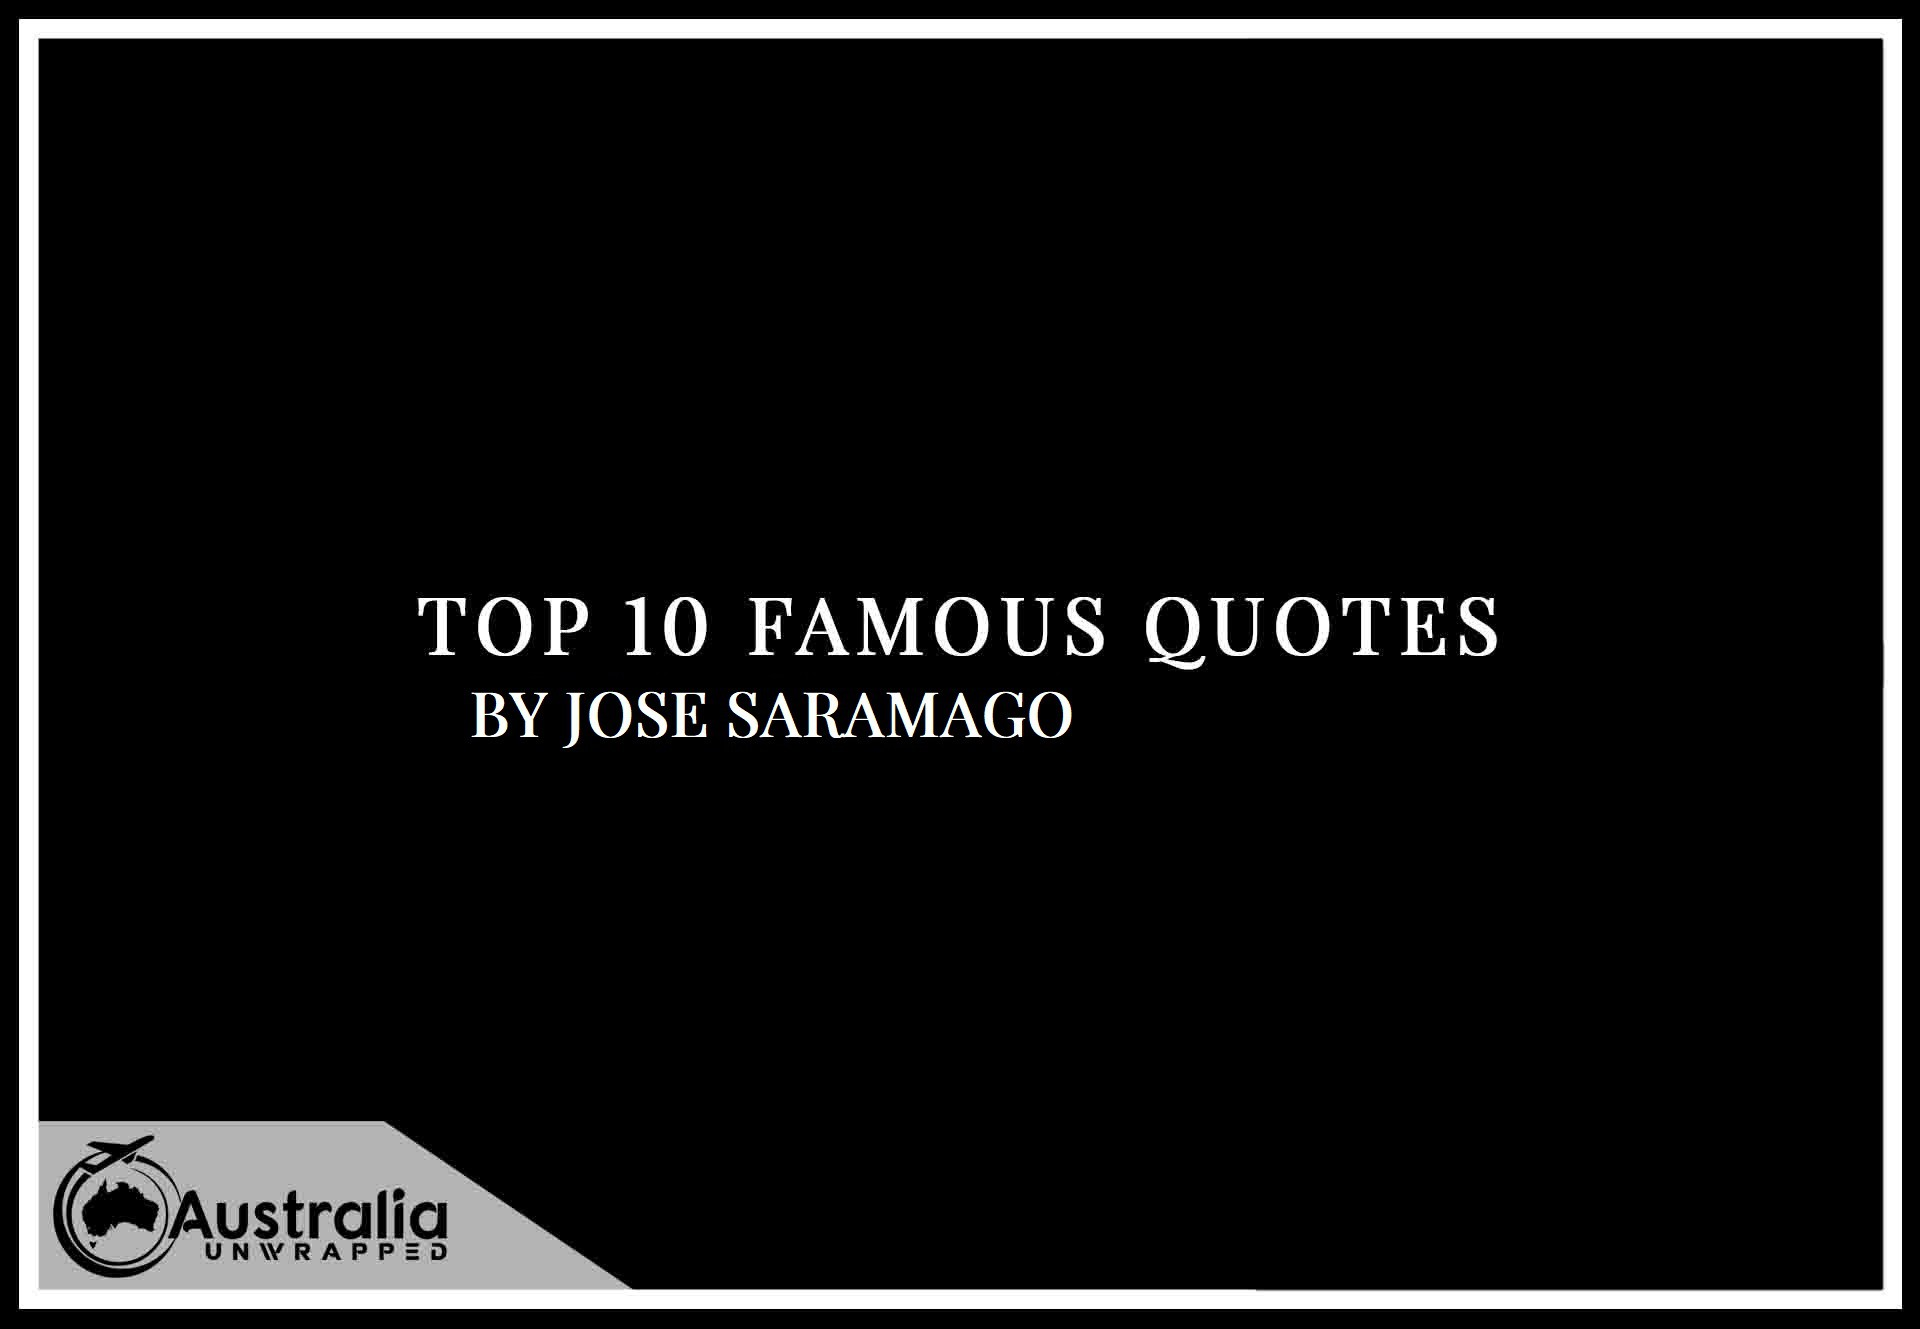 Top 10 Famous Quotes by Author José Saramago